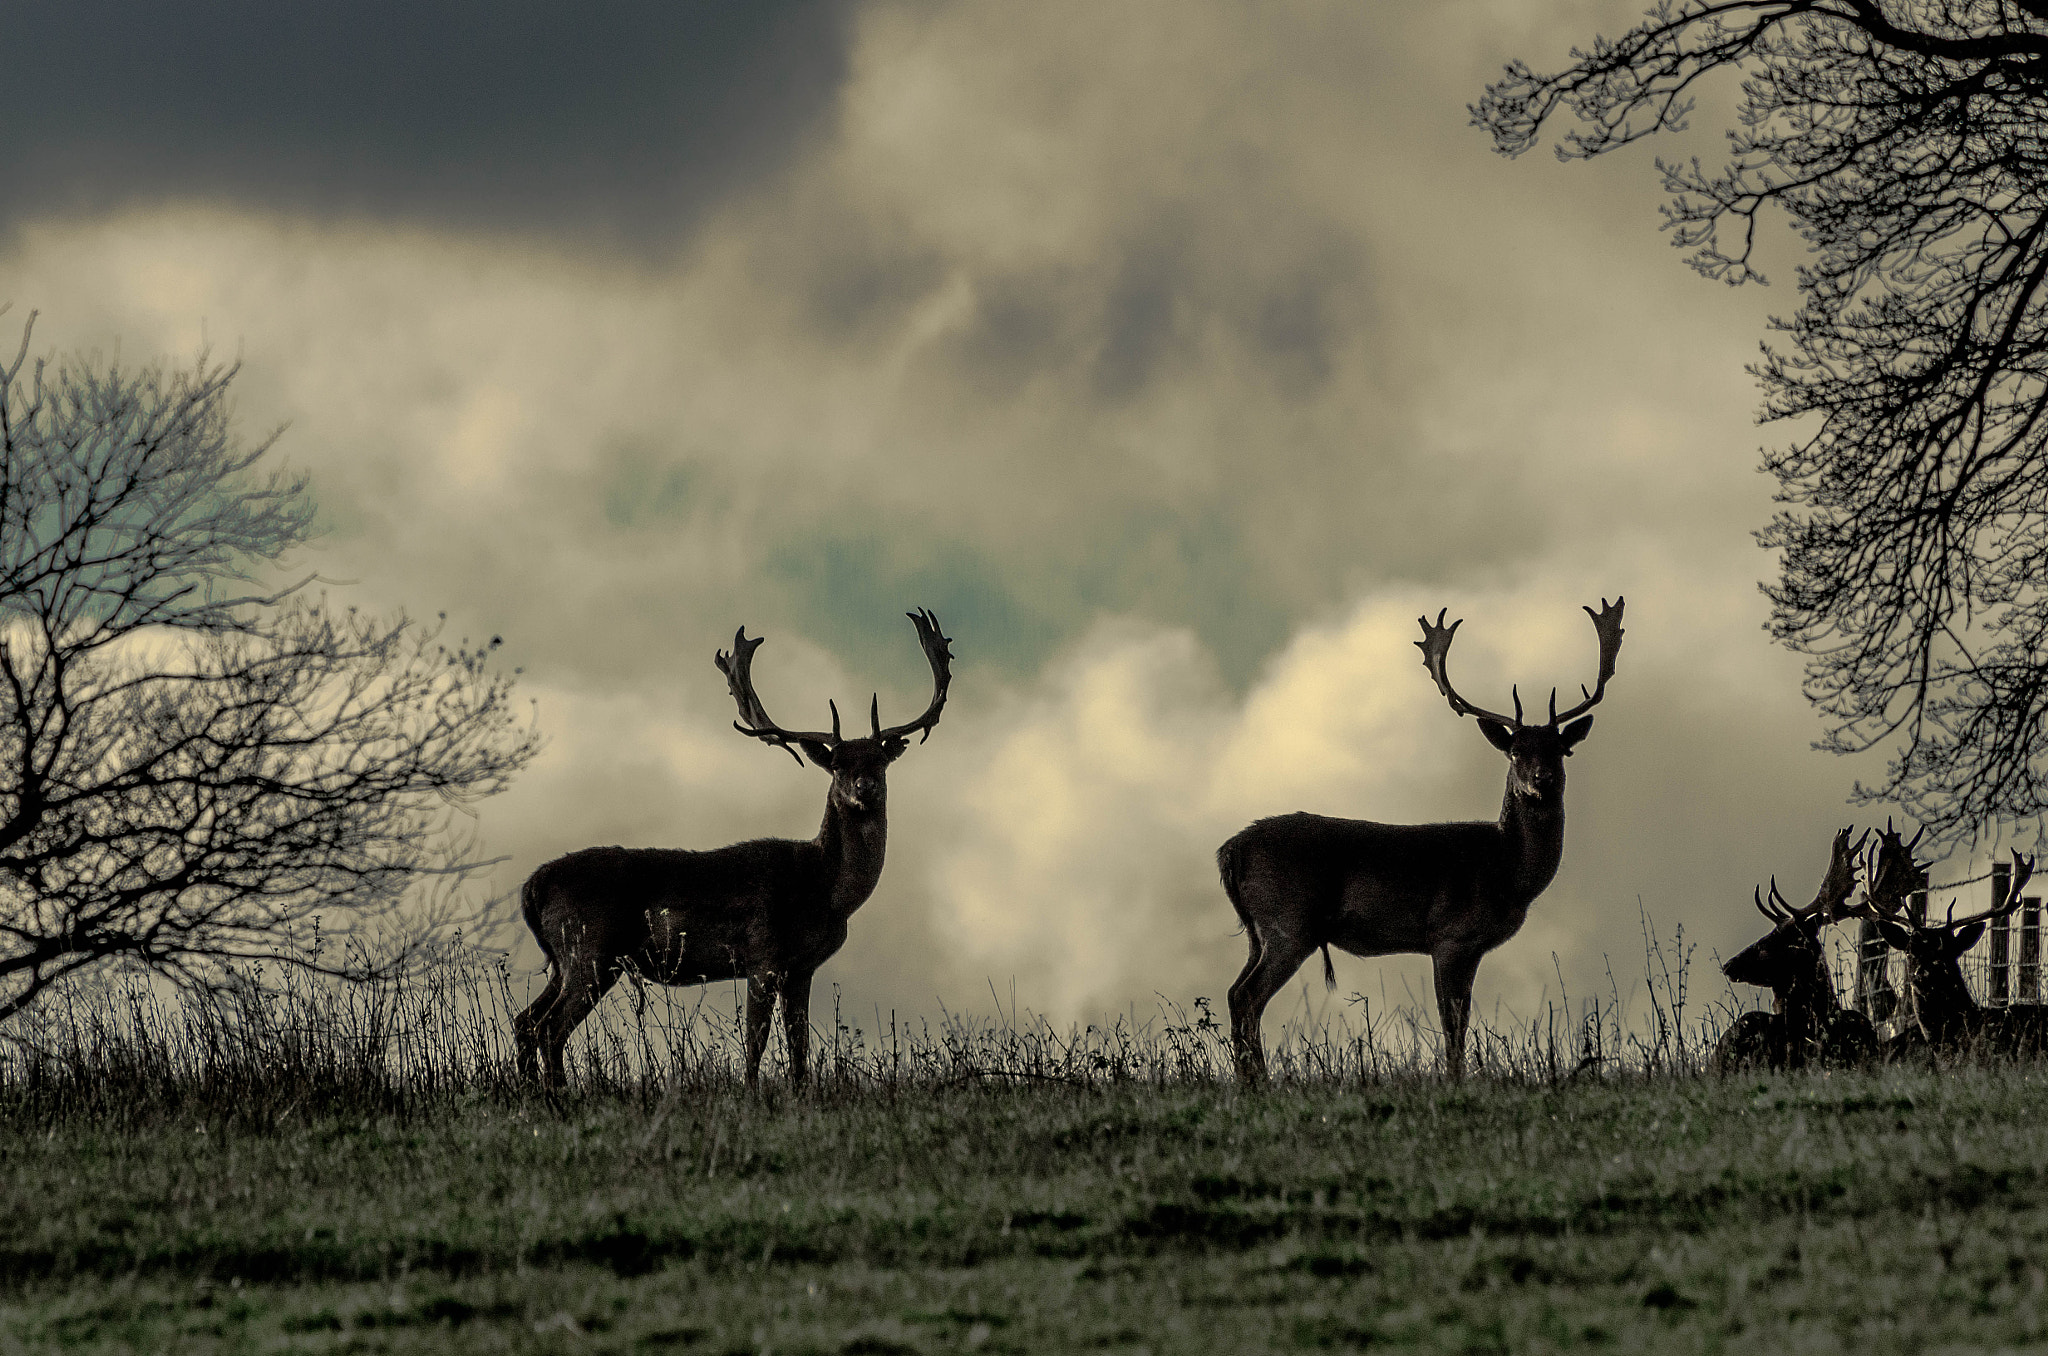 Photograph Near-Forest Life by Pawel Niktos on 500px